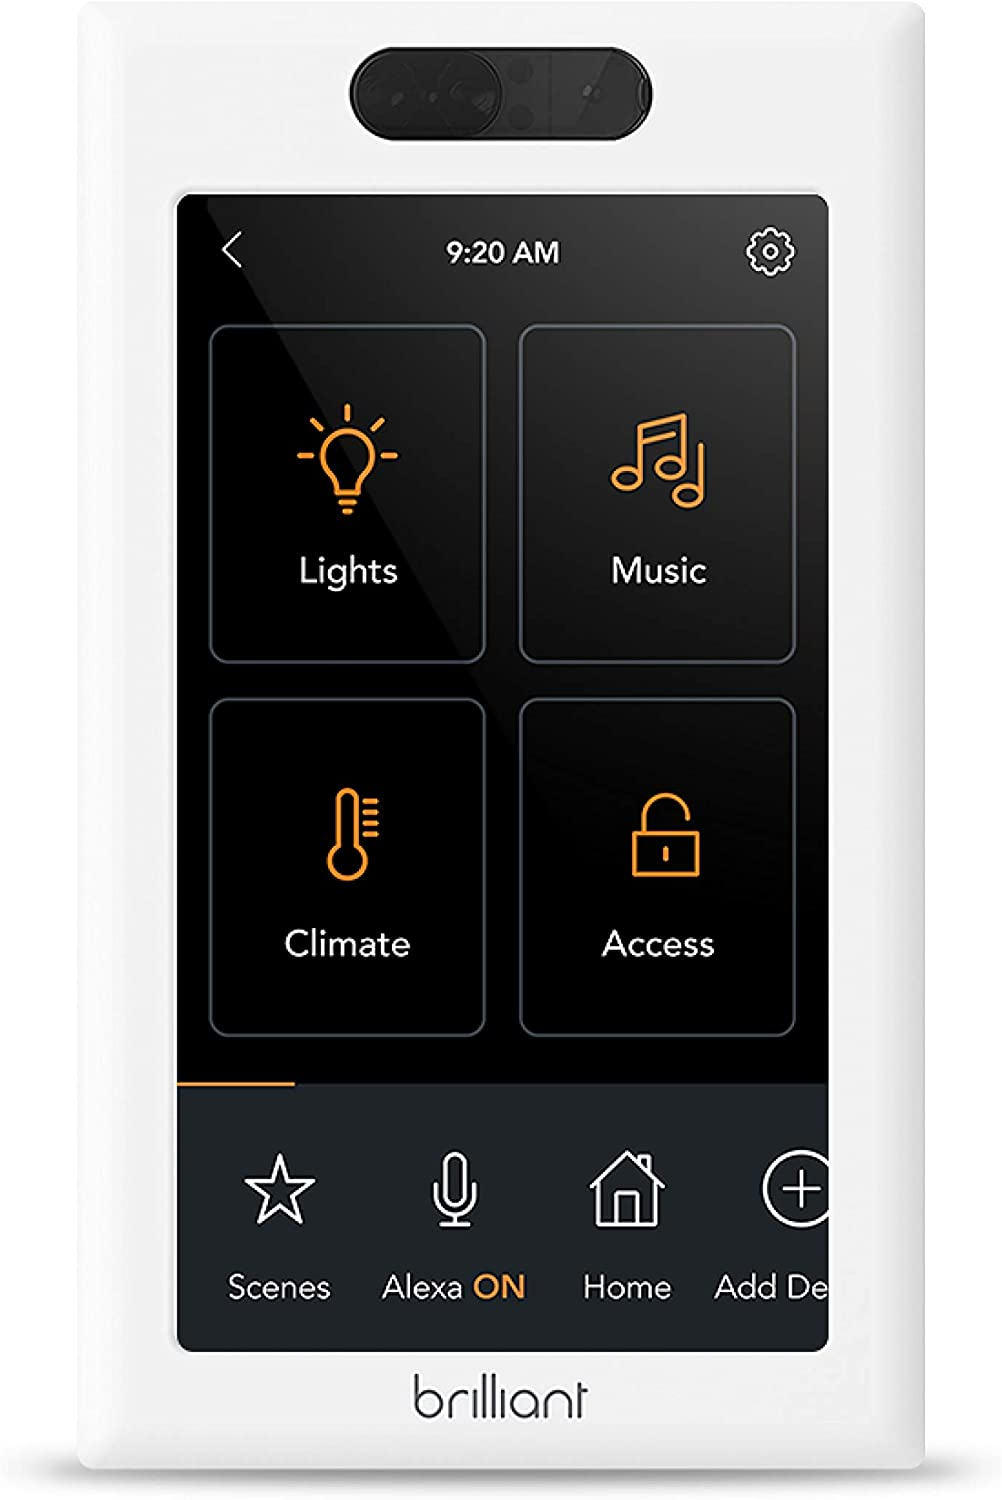 Brilliant Smart Home Control (1-Switch Panel) — Alexa Built-In & Compatible with Ring, Sonos, Hue, Kasa/TP-Link, Wemo, SmartThings, Apple HomeKit — In-Wall Touchscreen Control for Lights, Music & More